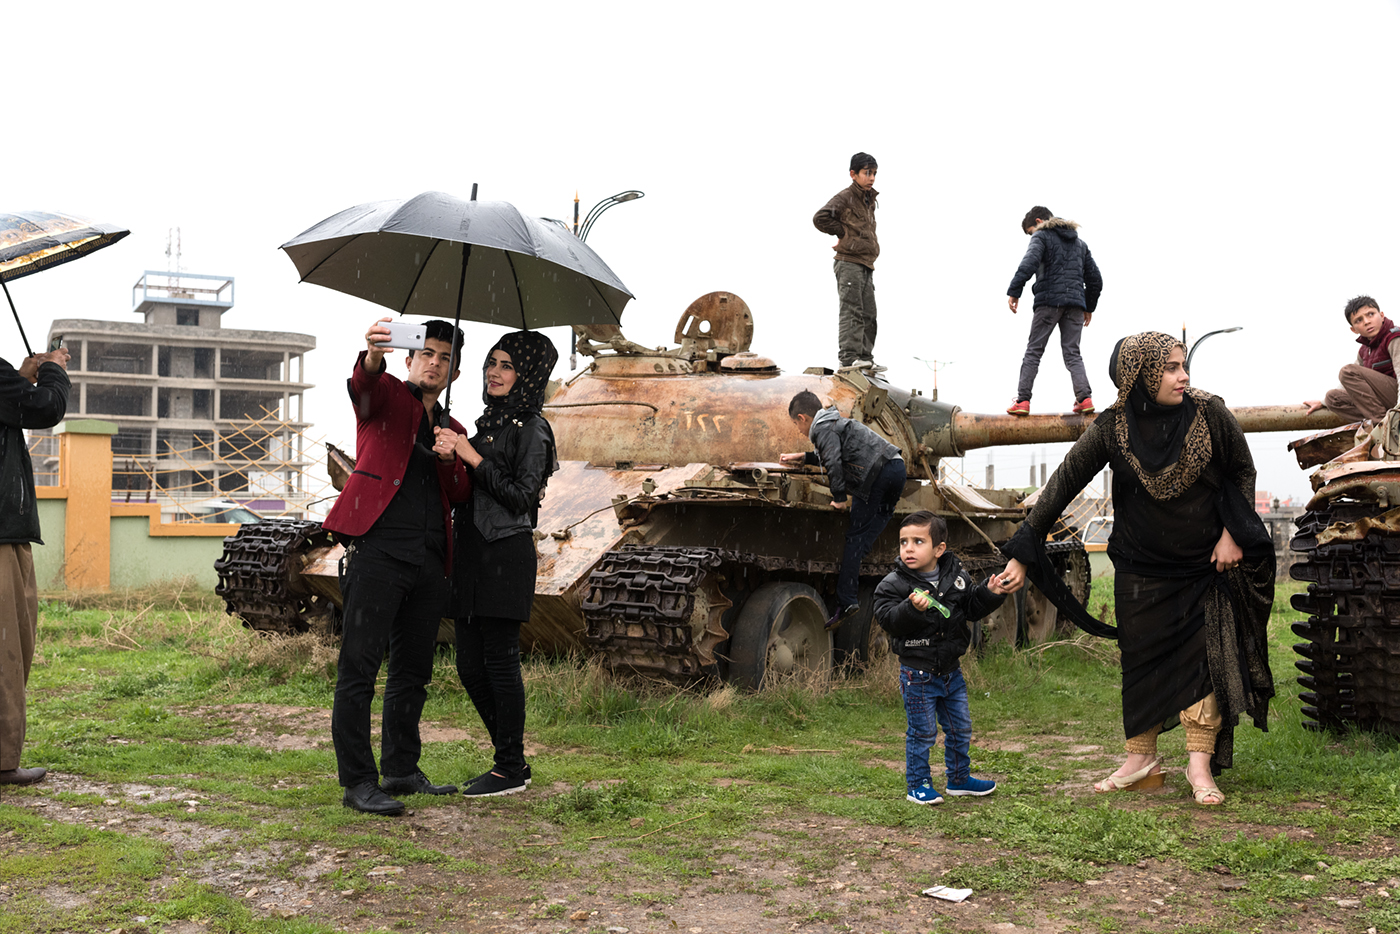 In Halabja, Kurdish families pose before tanks that were once used to exterminate them.  In 2006, the ex-president of Iraq, Saddam Hussein, was charged with the Anfal genocide which killed between 50,000 to 182,000 Kurds, and destroyed all ancestral Kurdish villages of north Iraq.